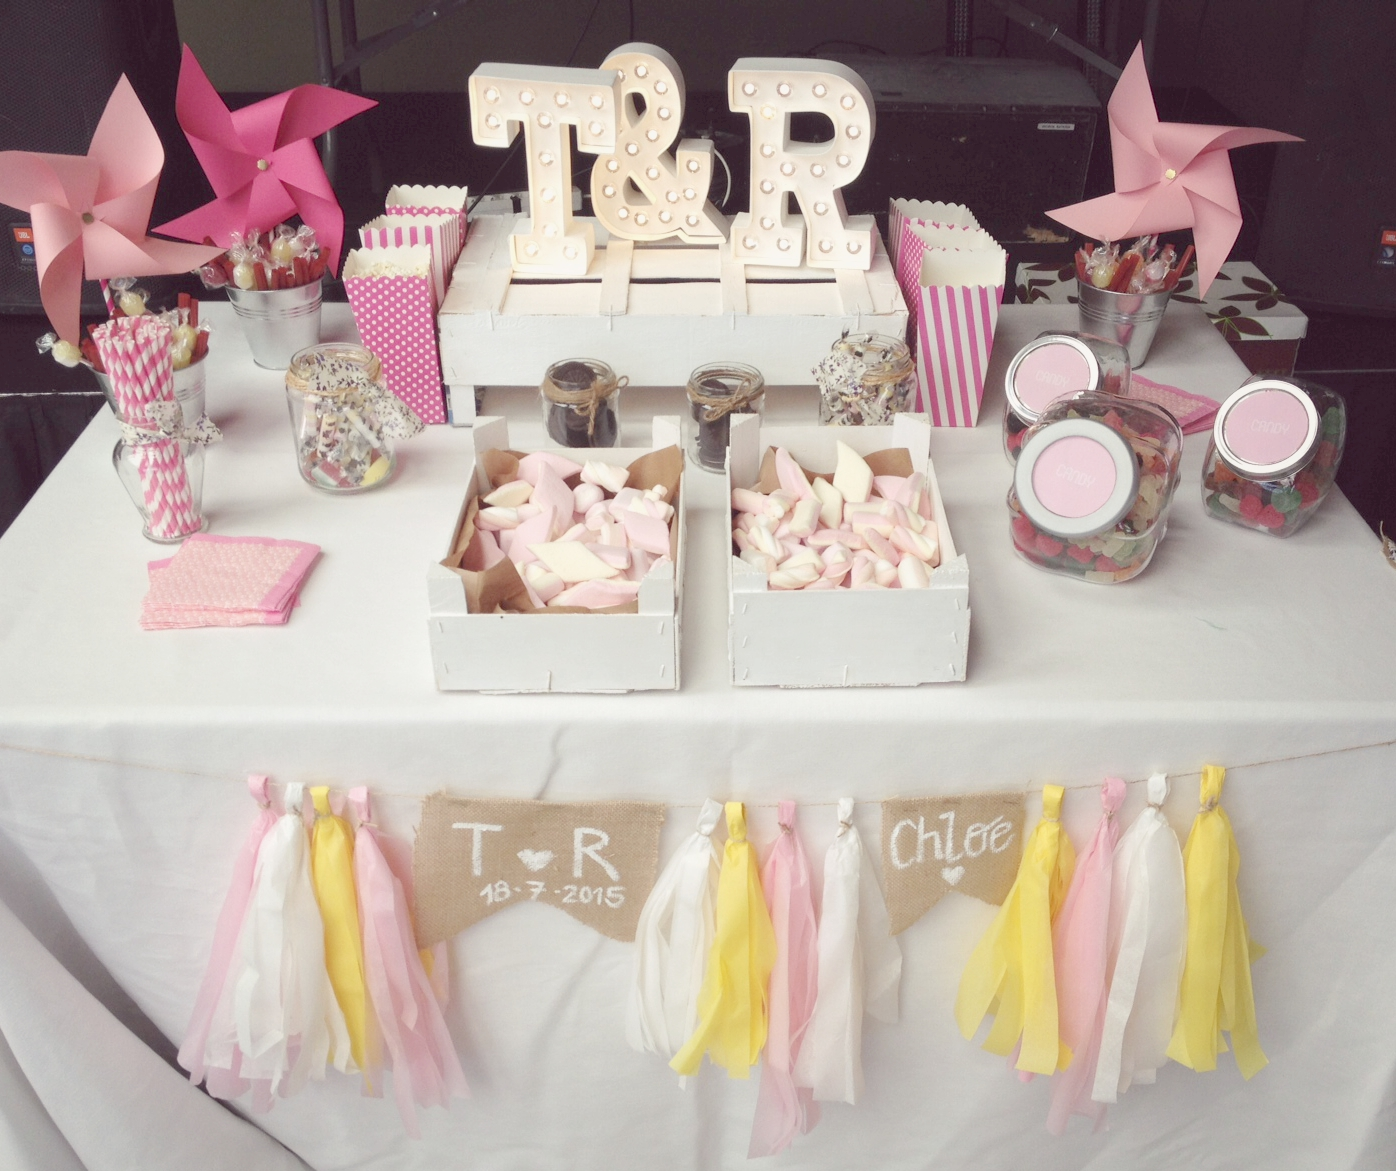 Candy bar bespoke taller de eventos - Decoracion de bar ...